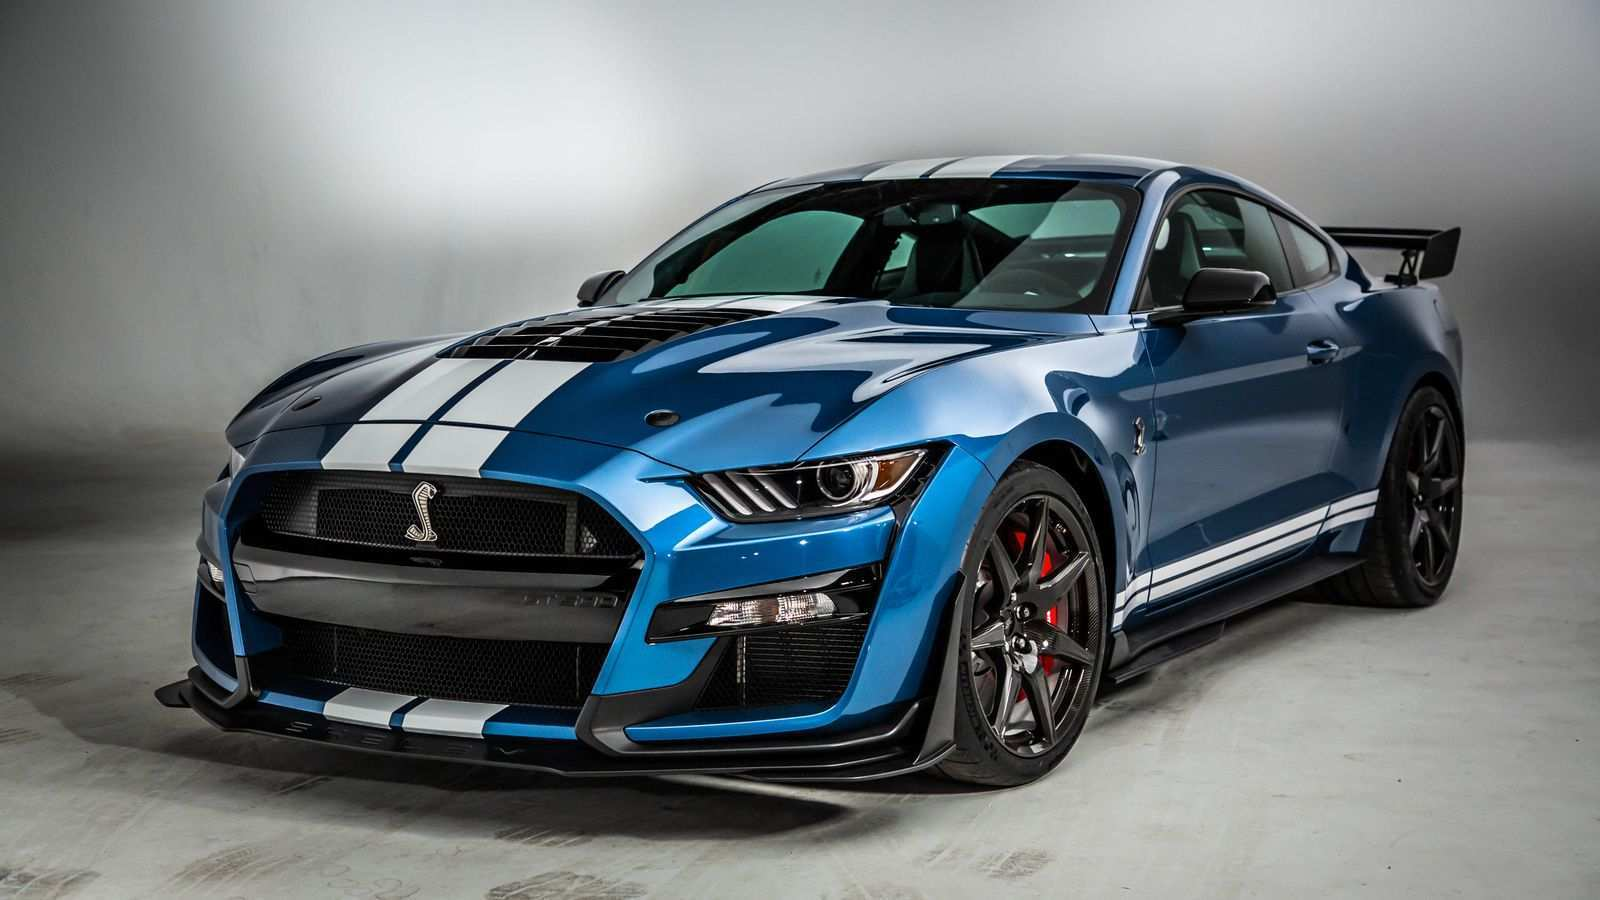 95 All New 2020 Ford Mustang Shelby Gt500 Reviews